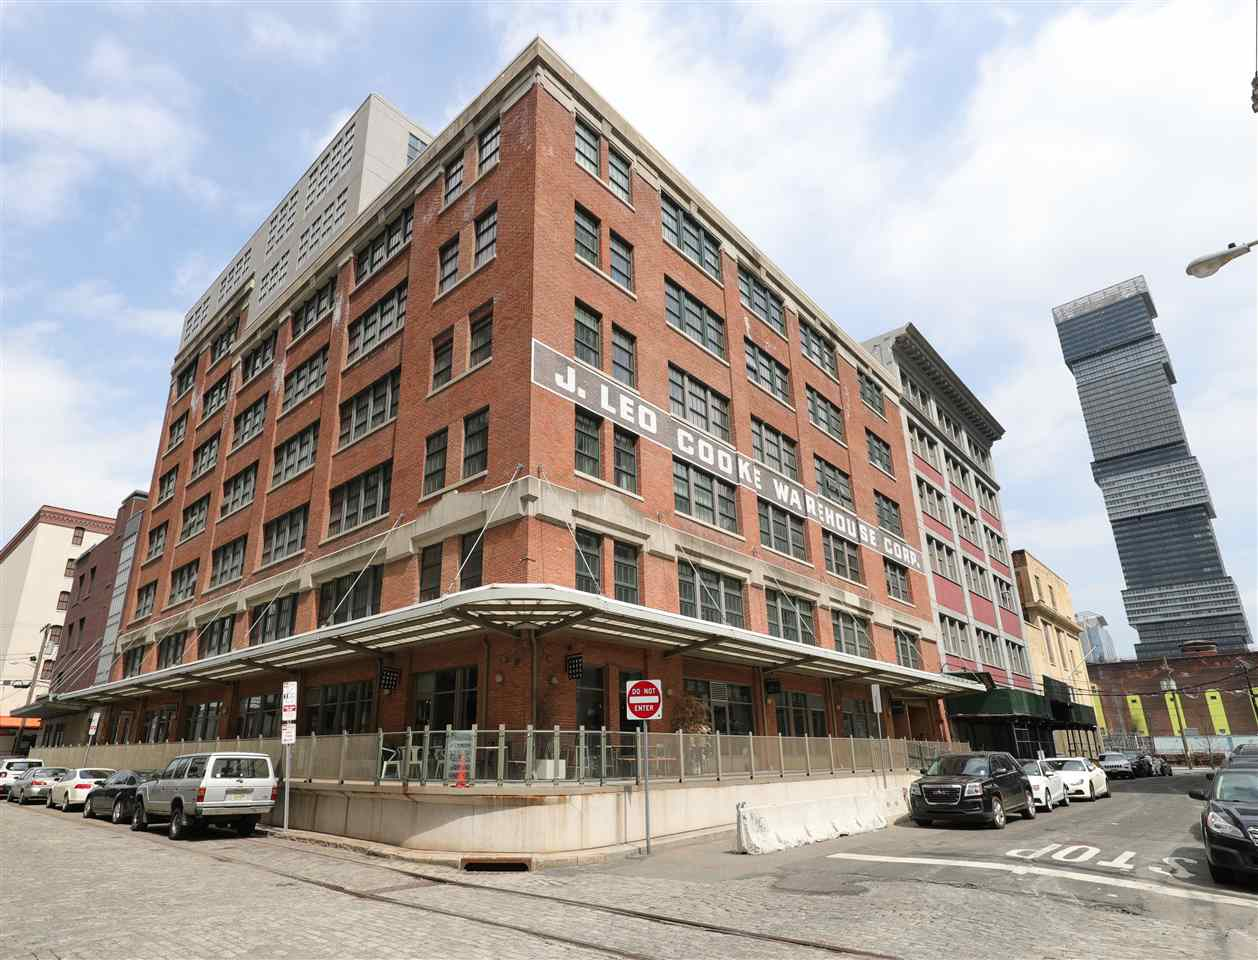 140 BAY ST 3B, JC, Downtown, NJ 07302